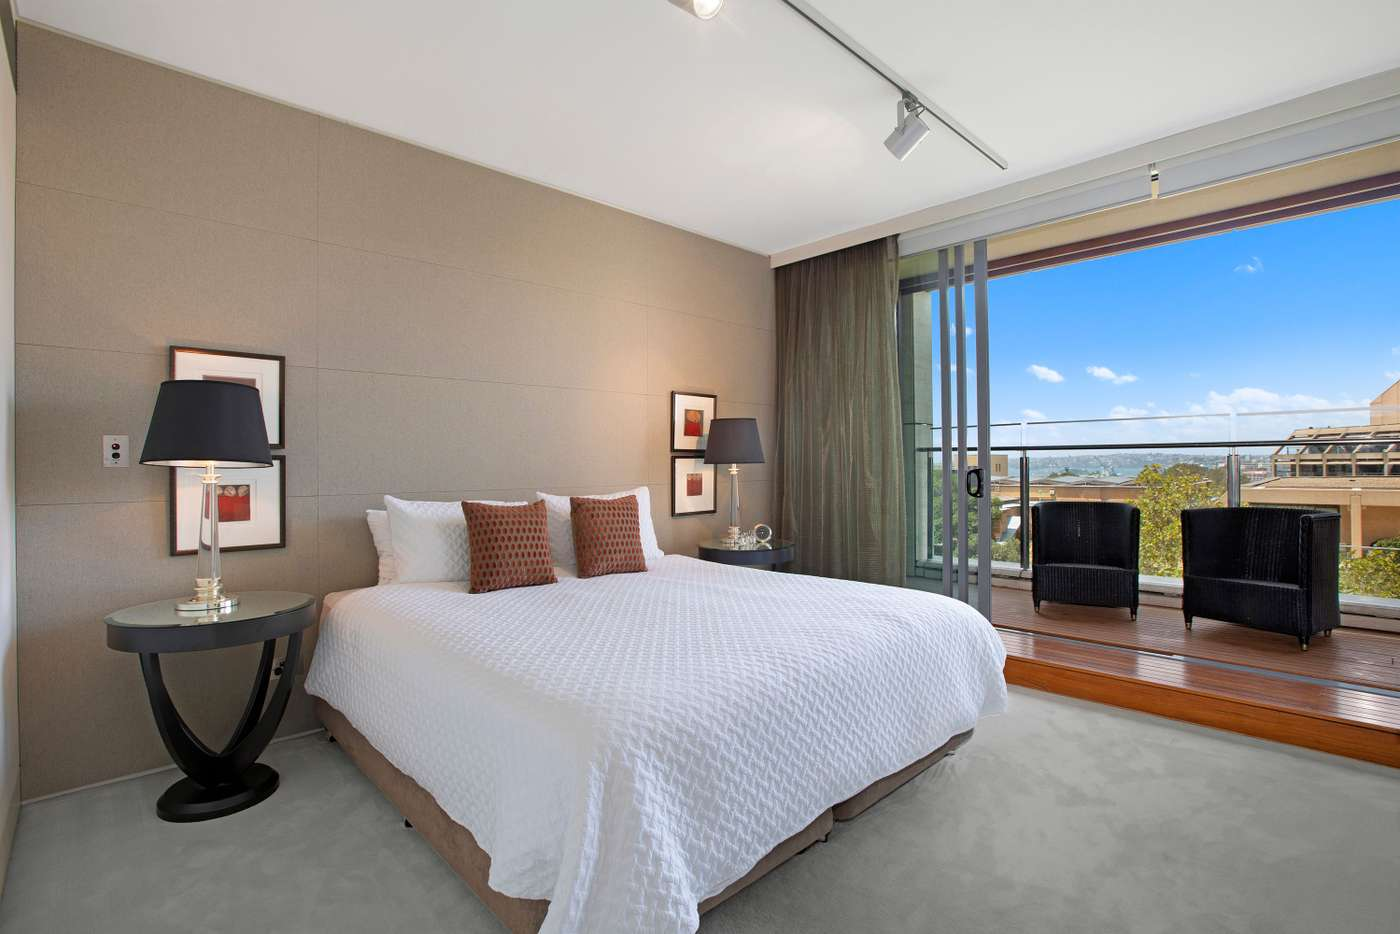 Main view of Homely apartment listing, 701/185 Macquarie Street, Sydney NSW 2000